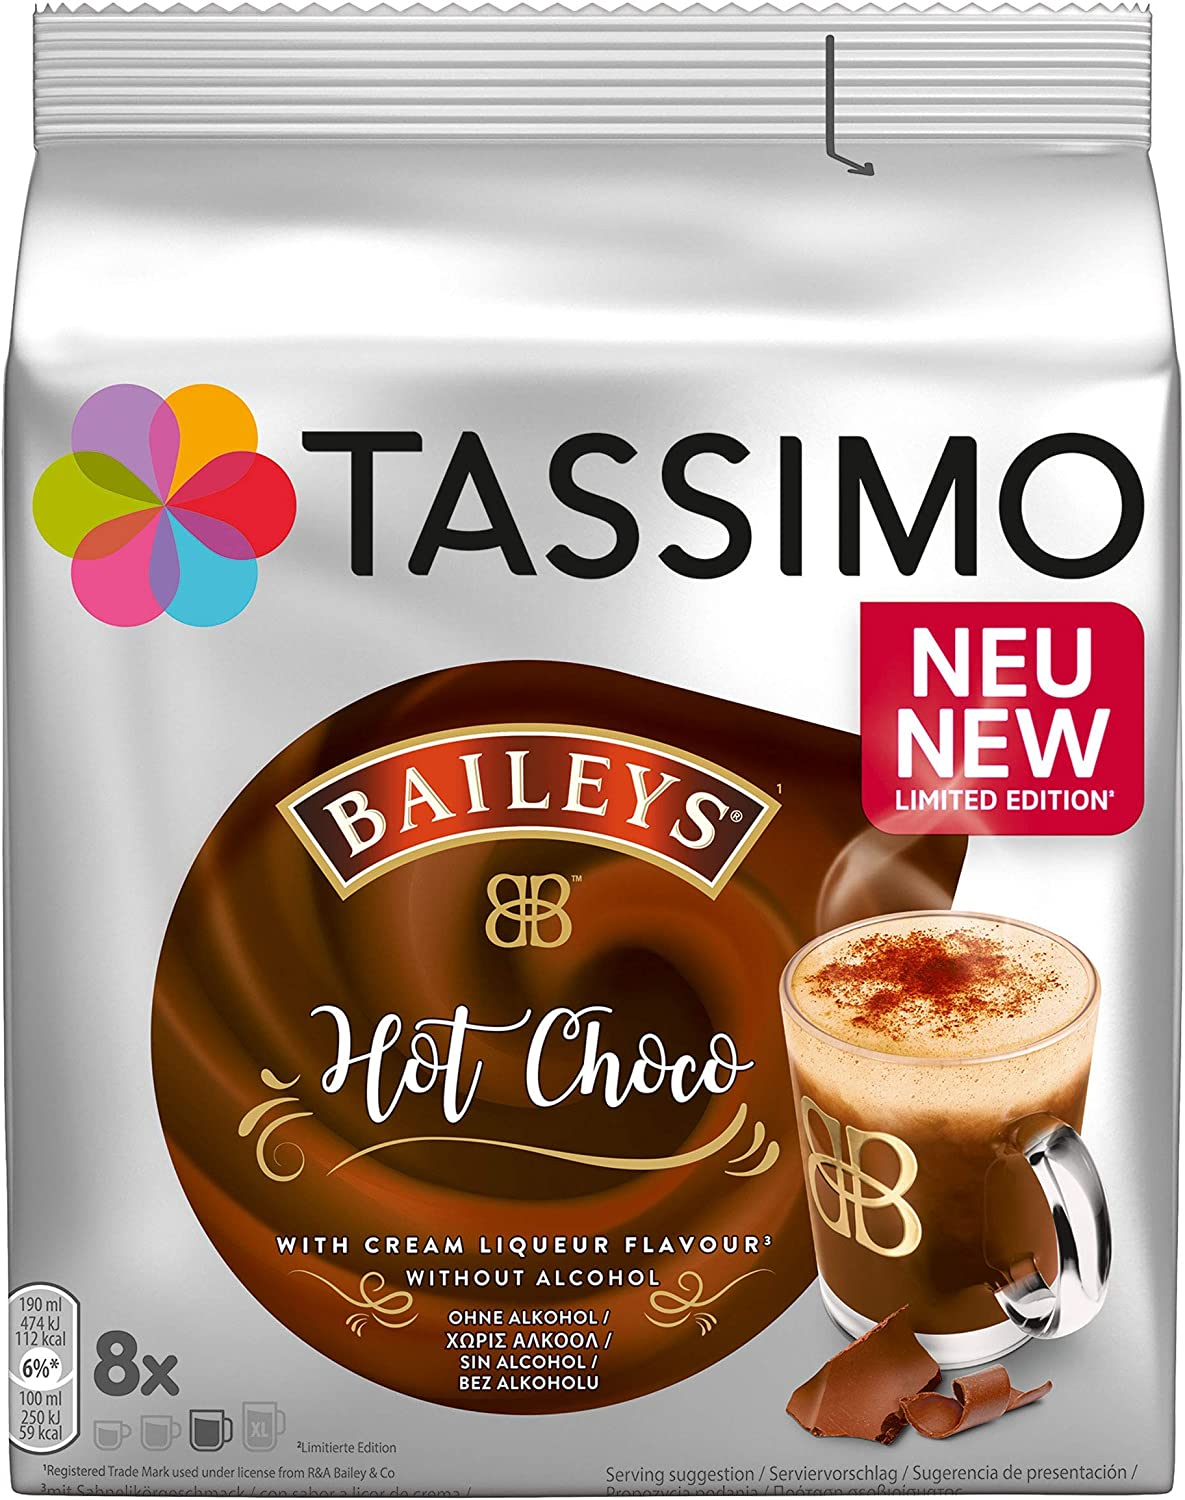 Tassimo Baileys Hot Chocolate Pods Pack Of 5 40 Pods In Total 40 Servings